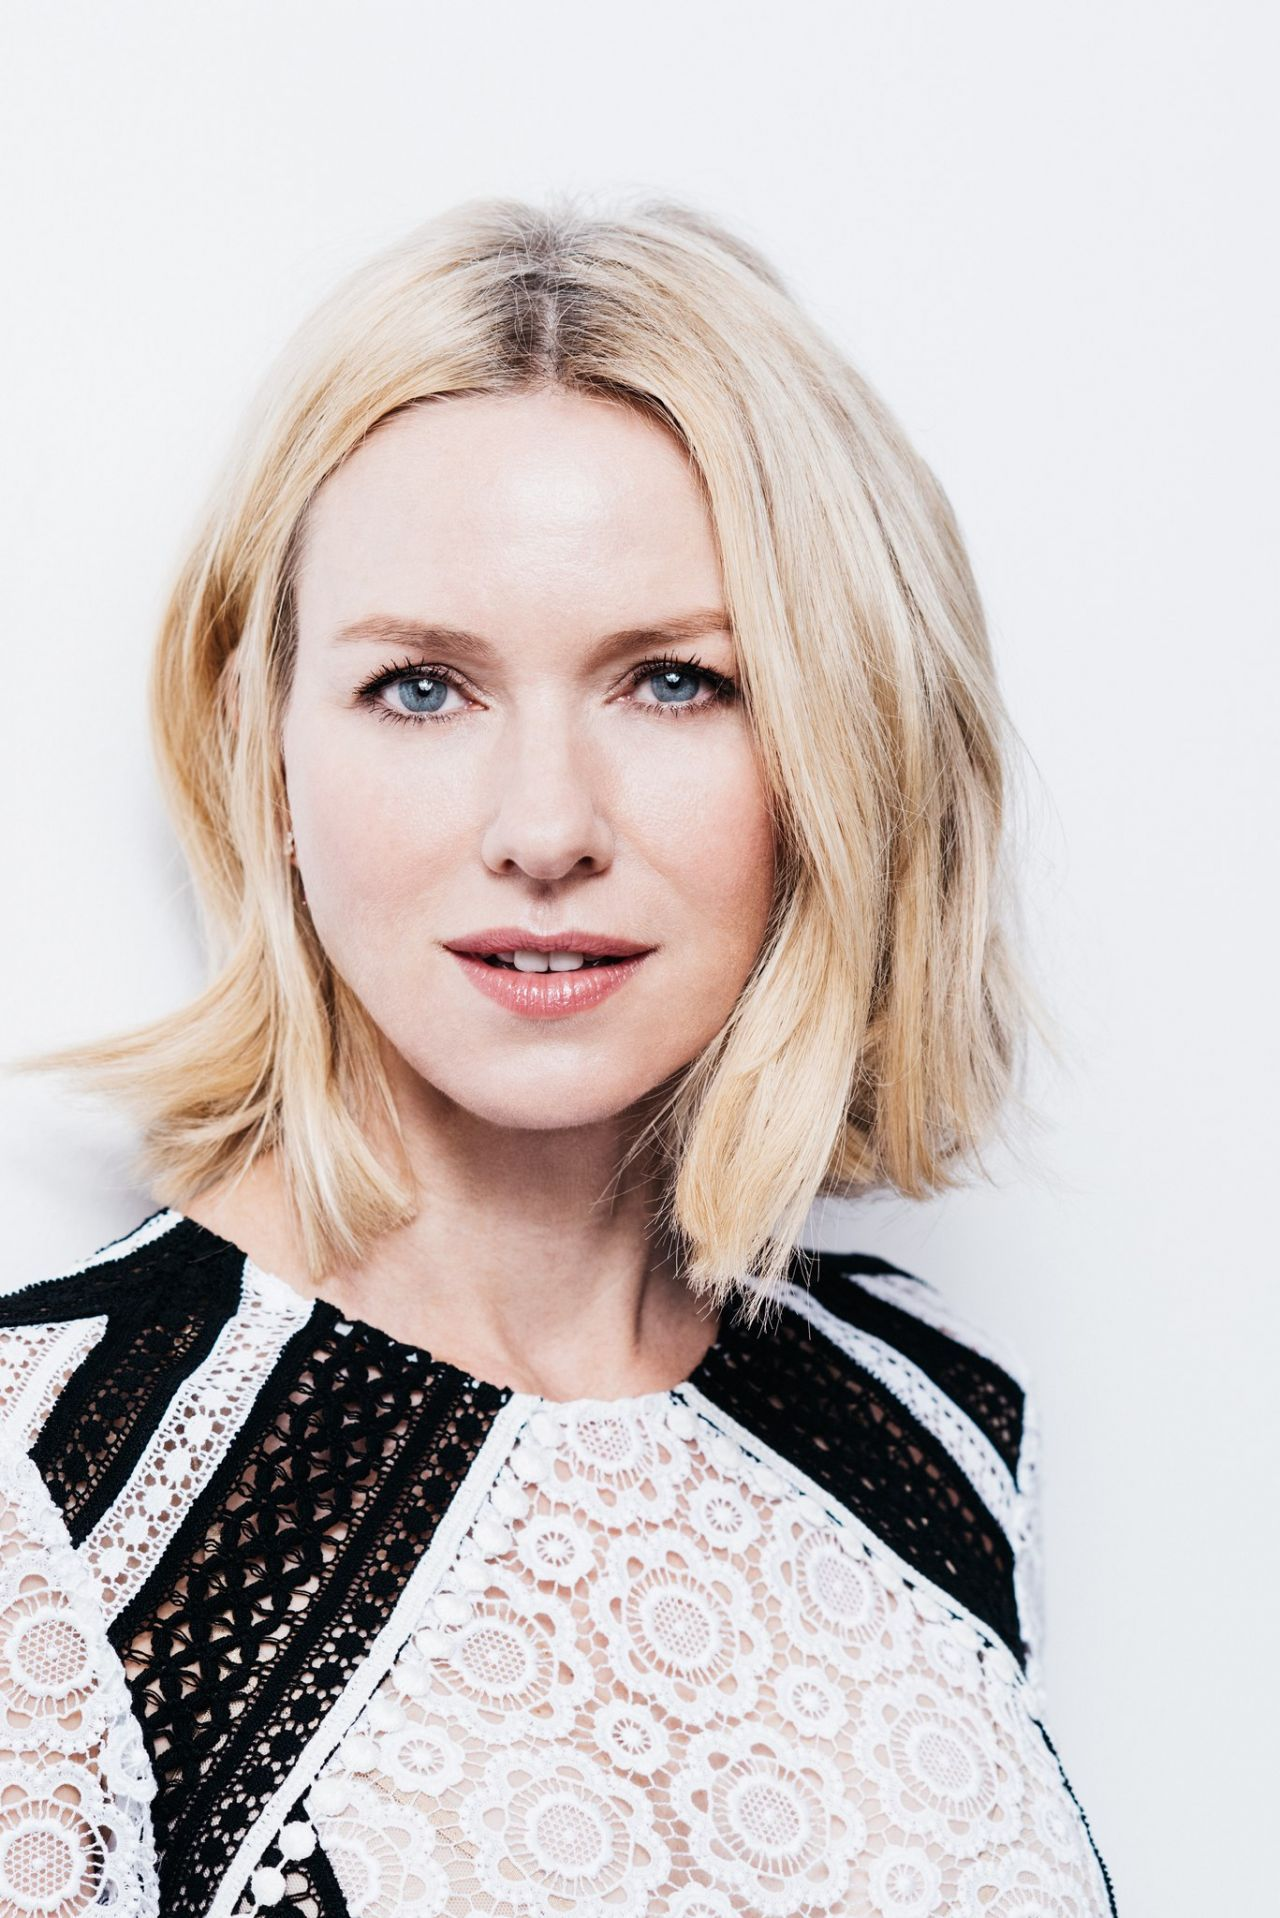 Naomi Watts Photoshoot...